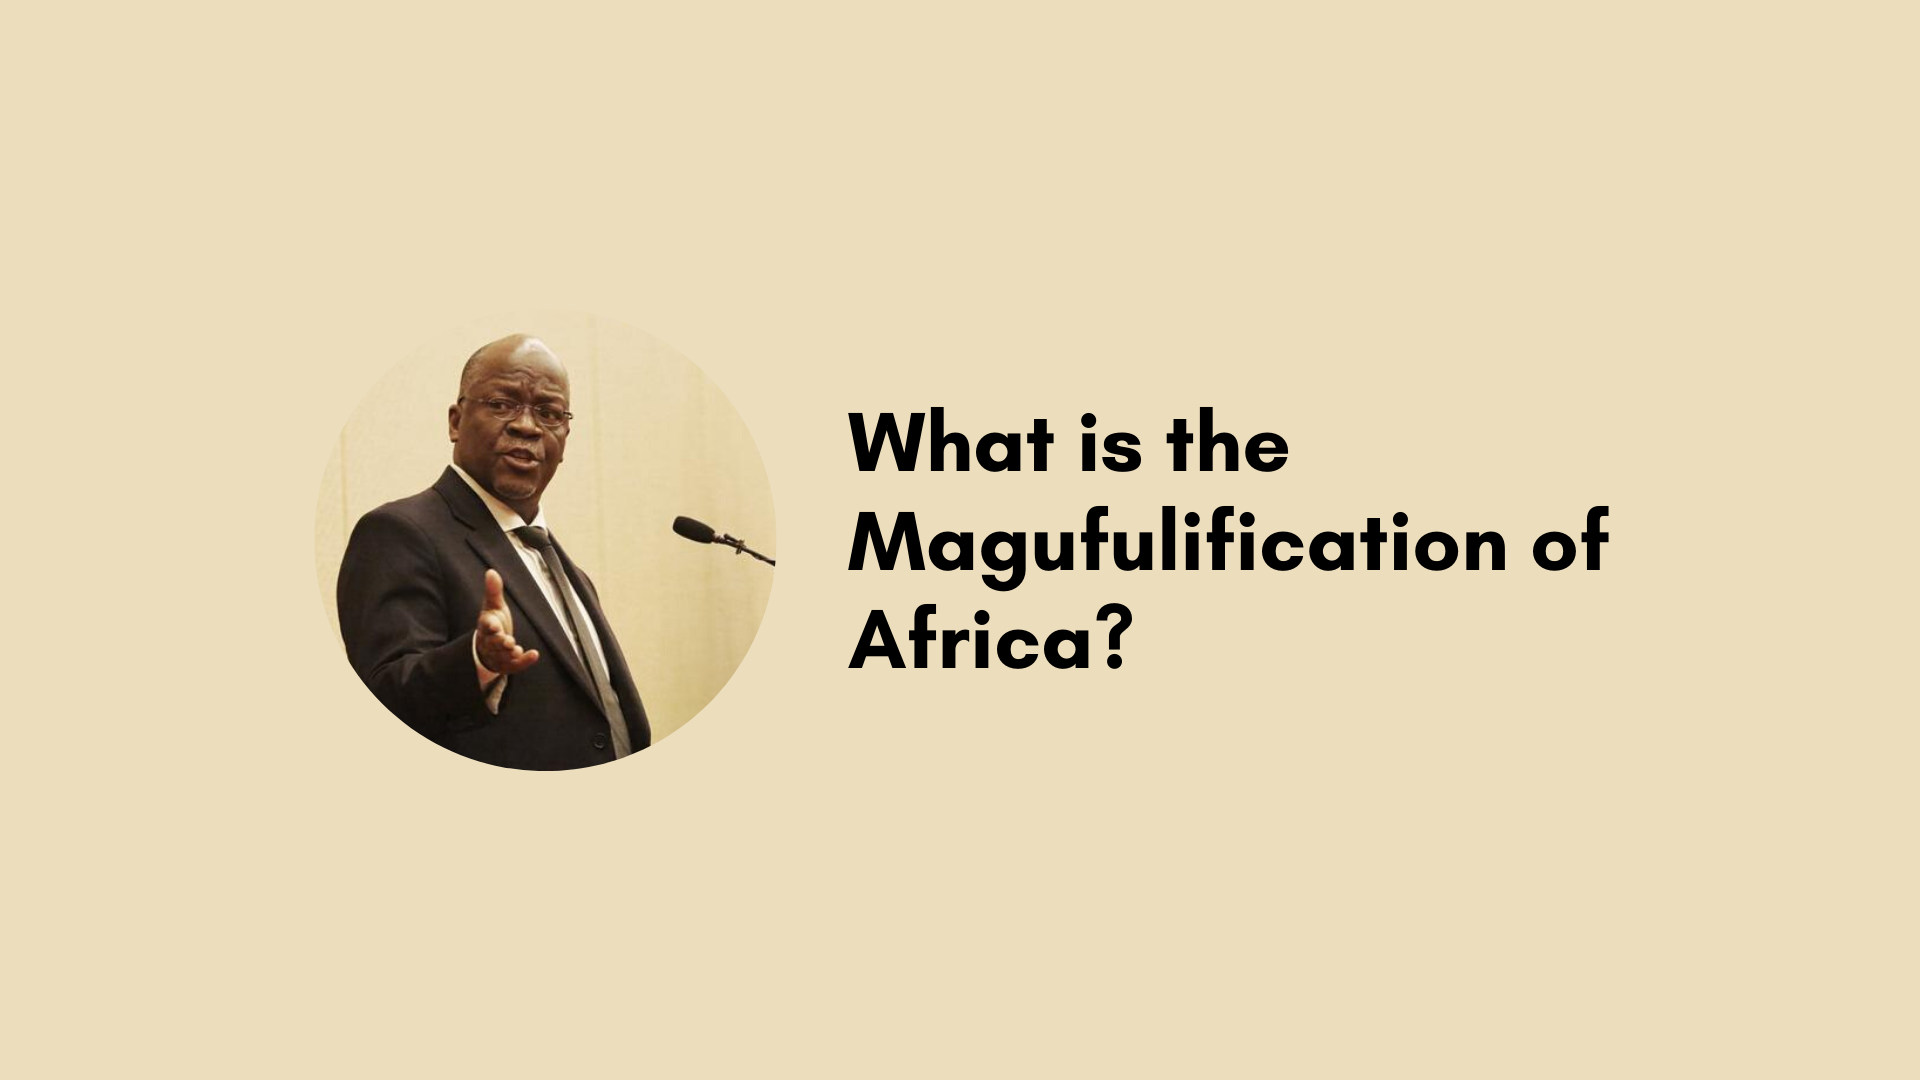 Magufulification of Africa